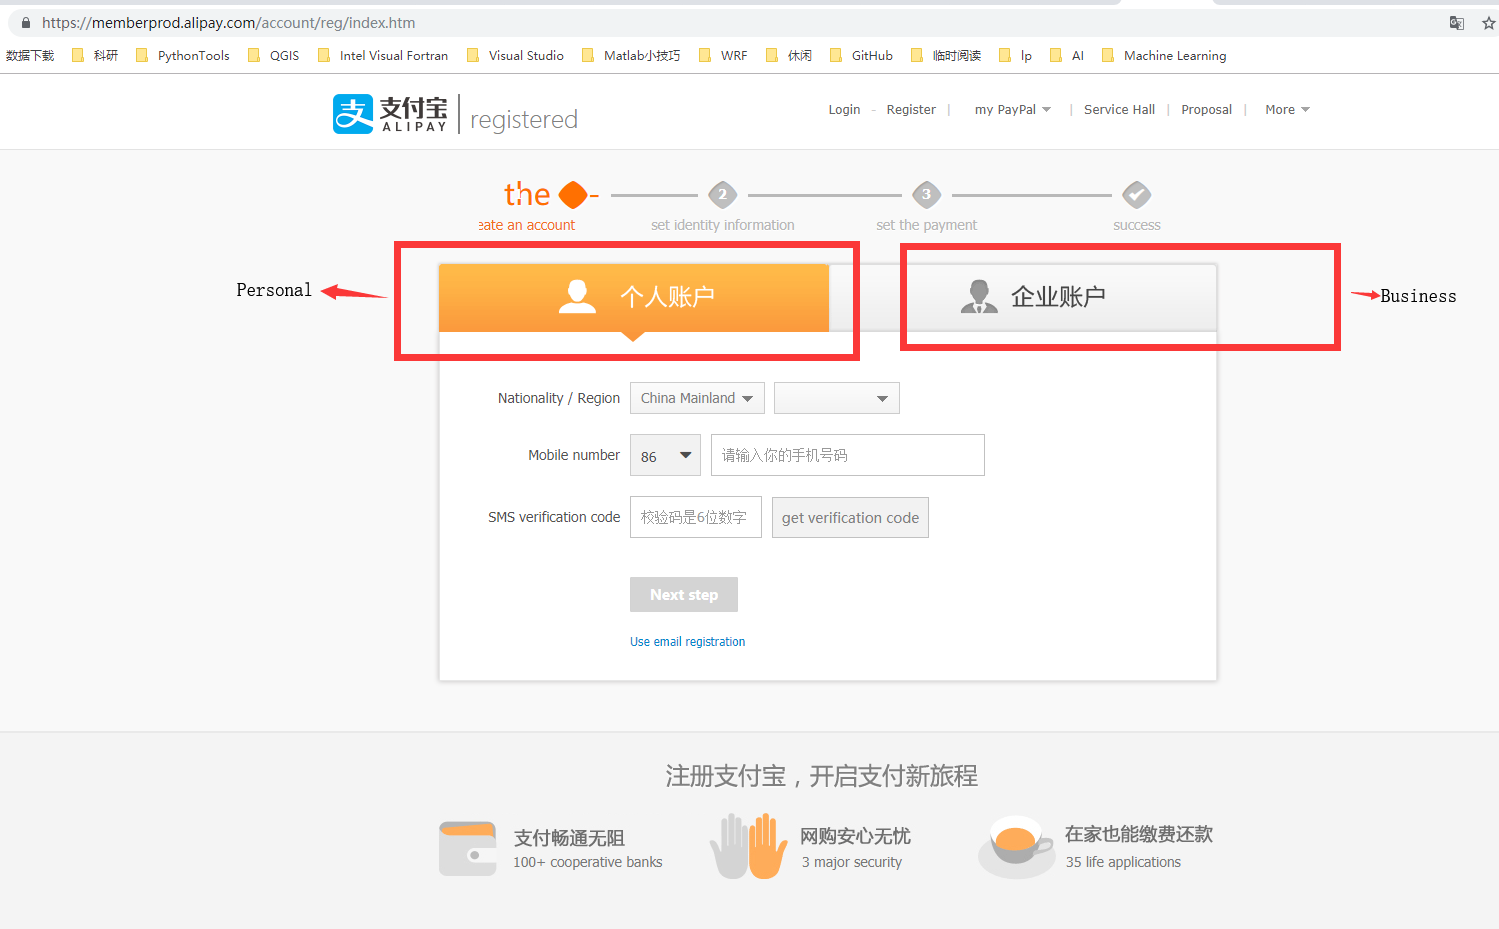 Suggestions : add some chinese donation channels, eg  ali pay or